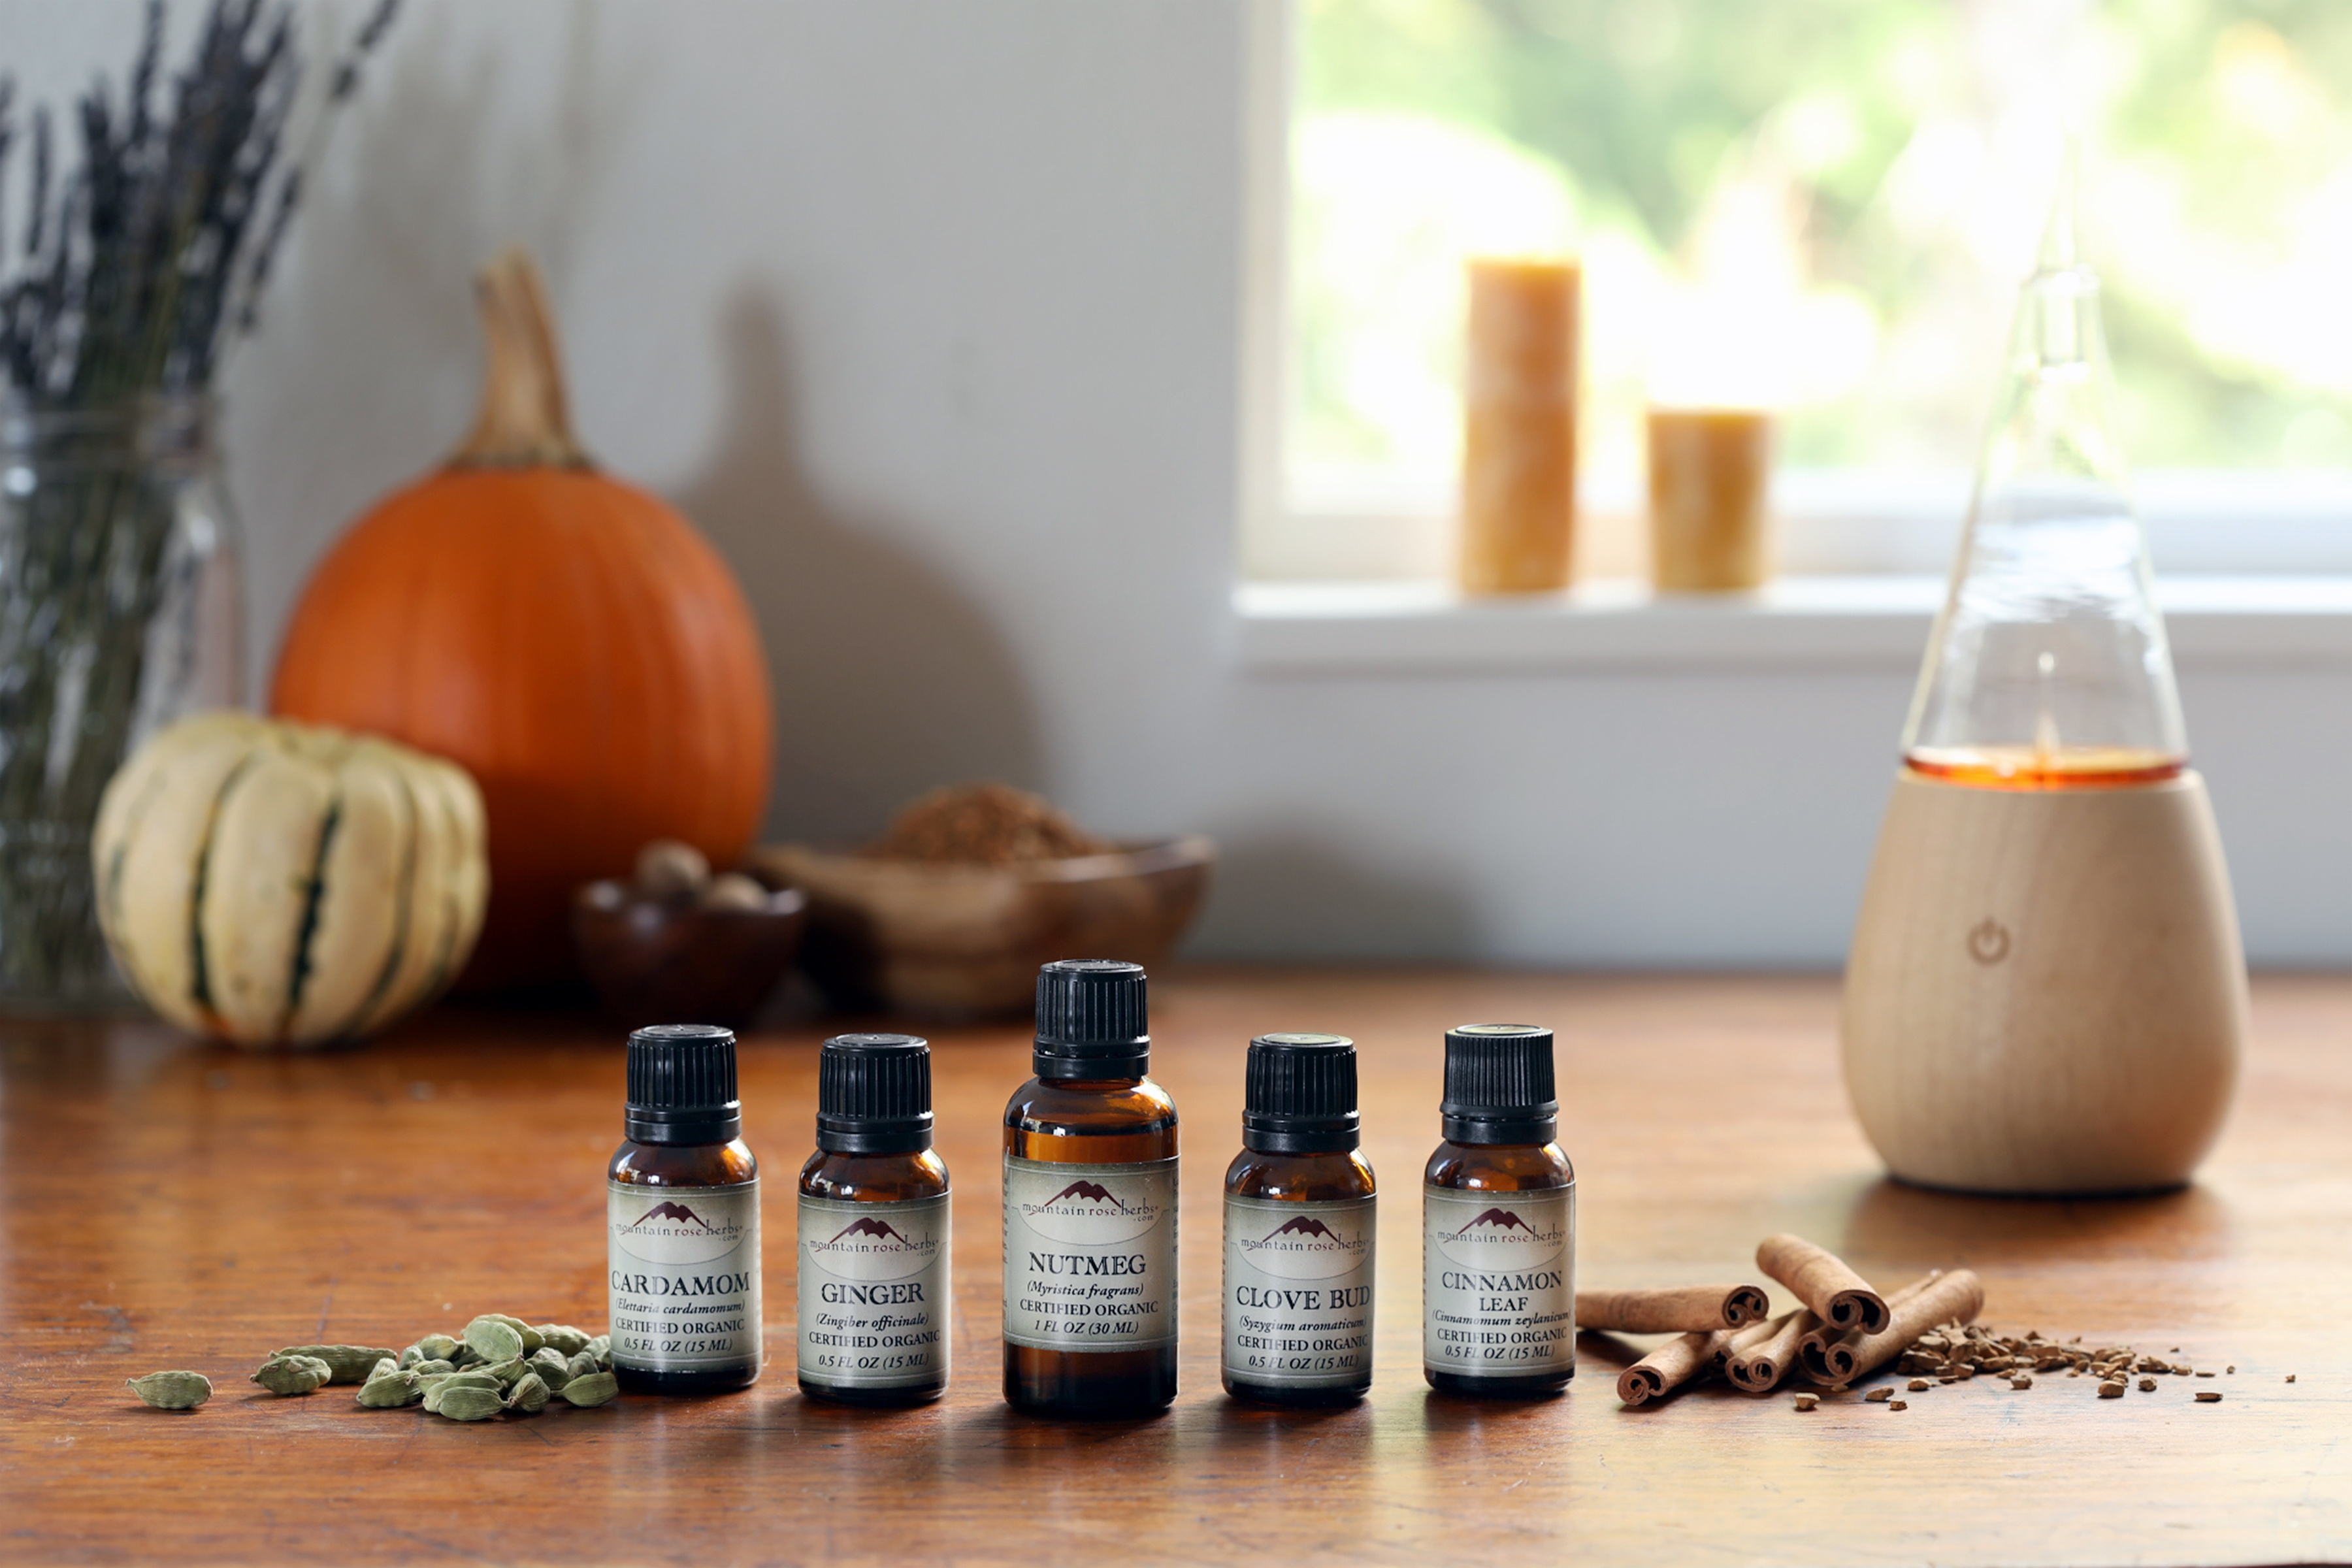 Essential oils, herbs, and diffuser on wooden table with pumpkins